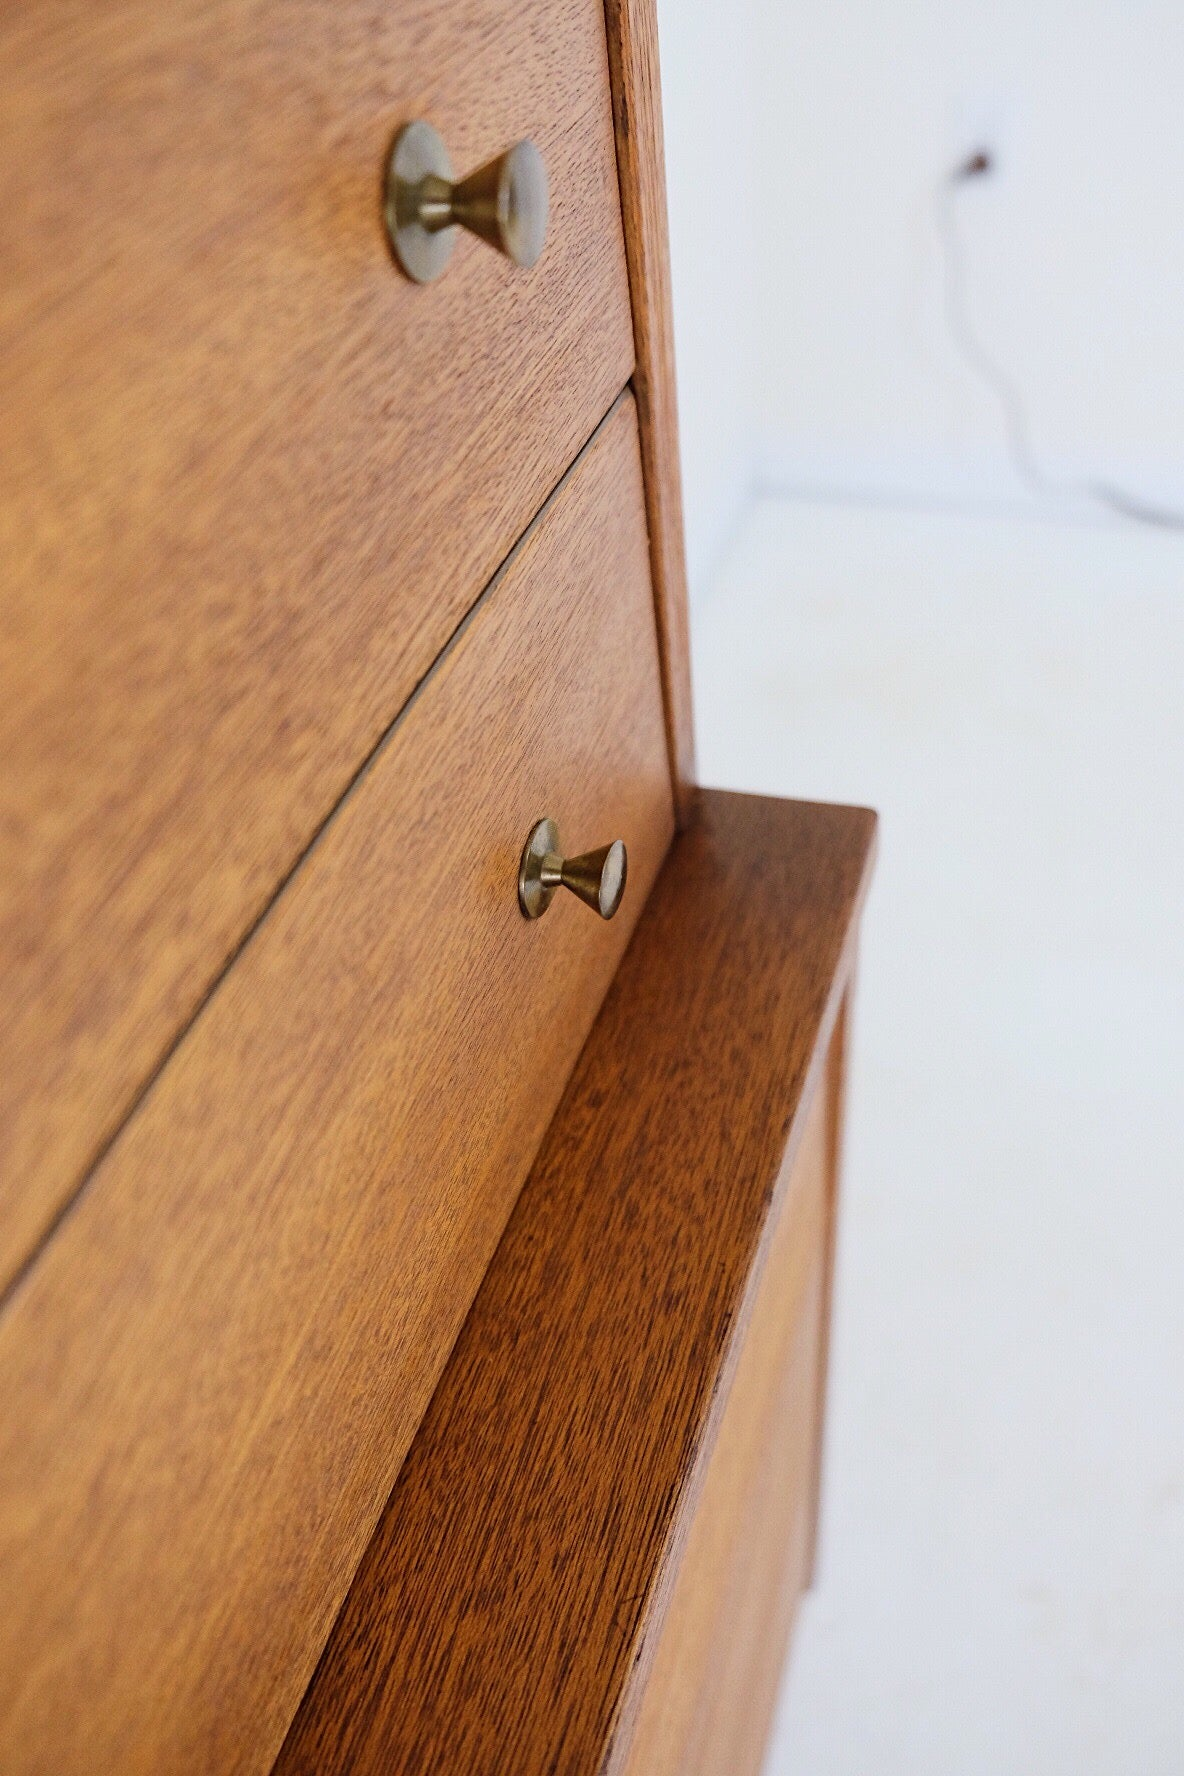 Hooker Mainline Tall Dresser Brass Pulls and Inset Handles Five Drawers